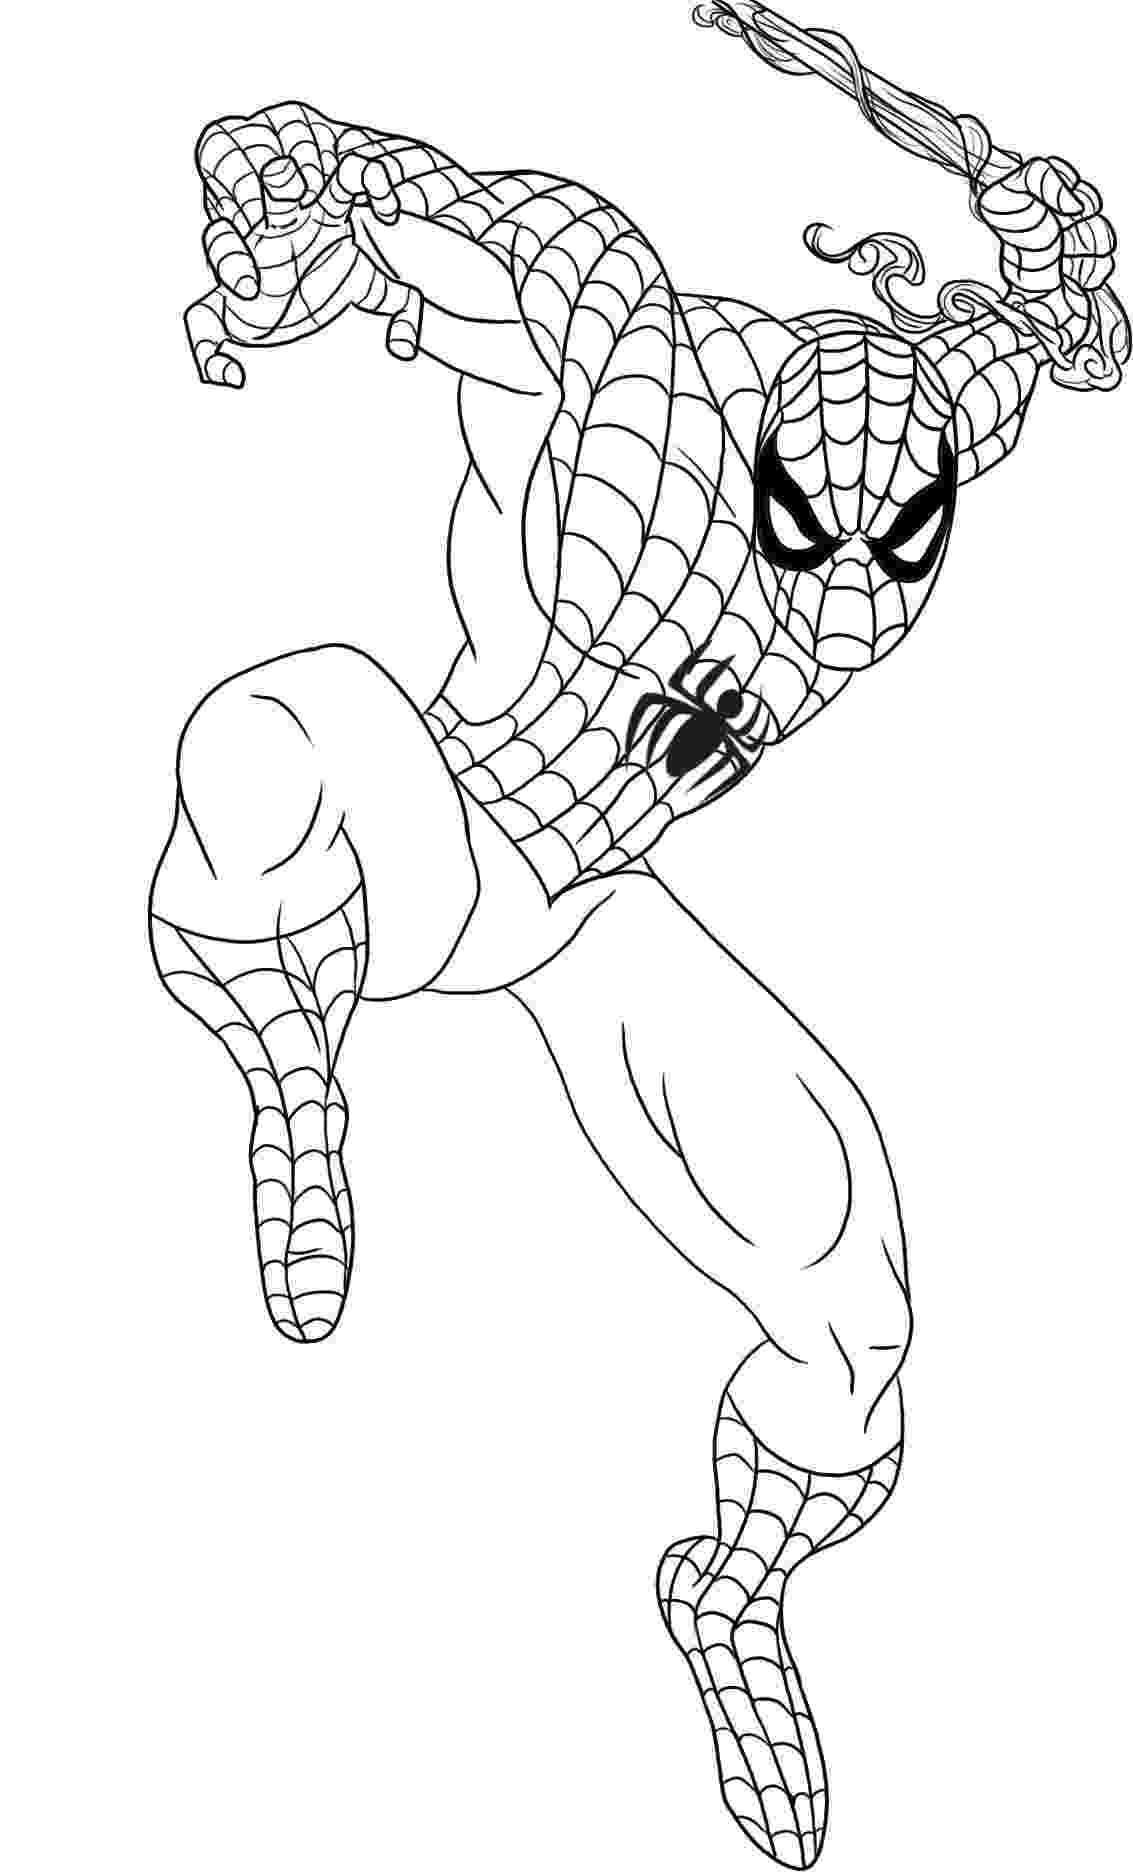 spiderman coloring books spiderman coloring page download for free print coloring books spiderman